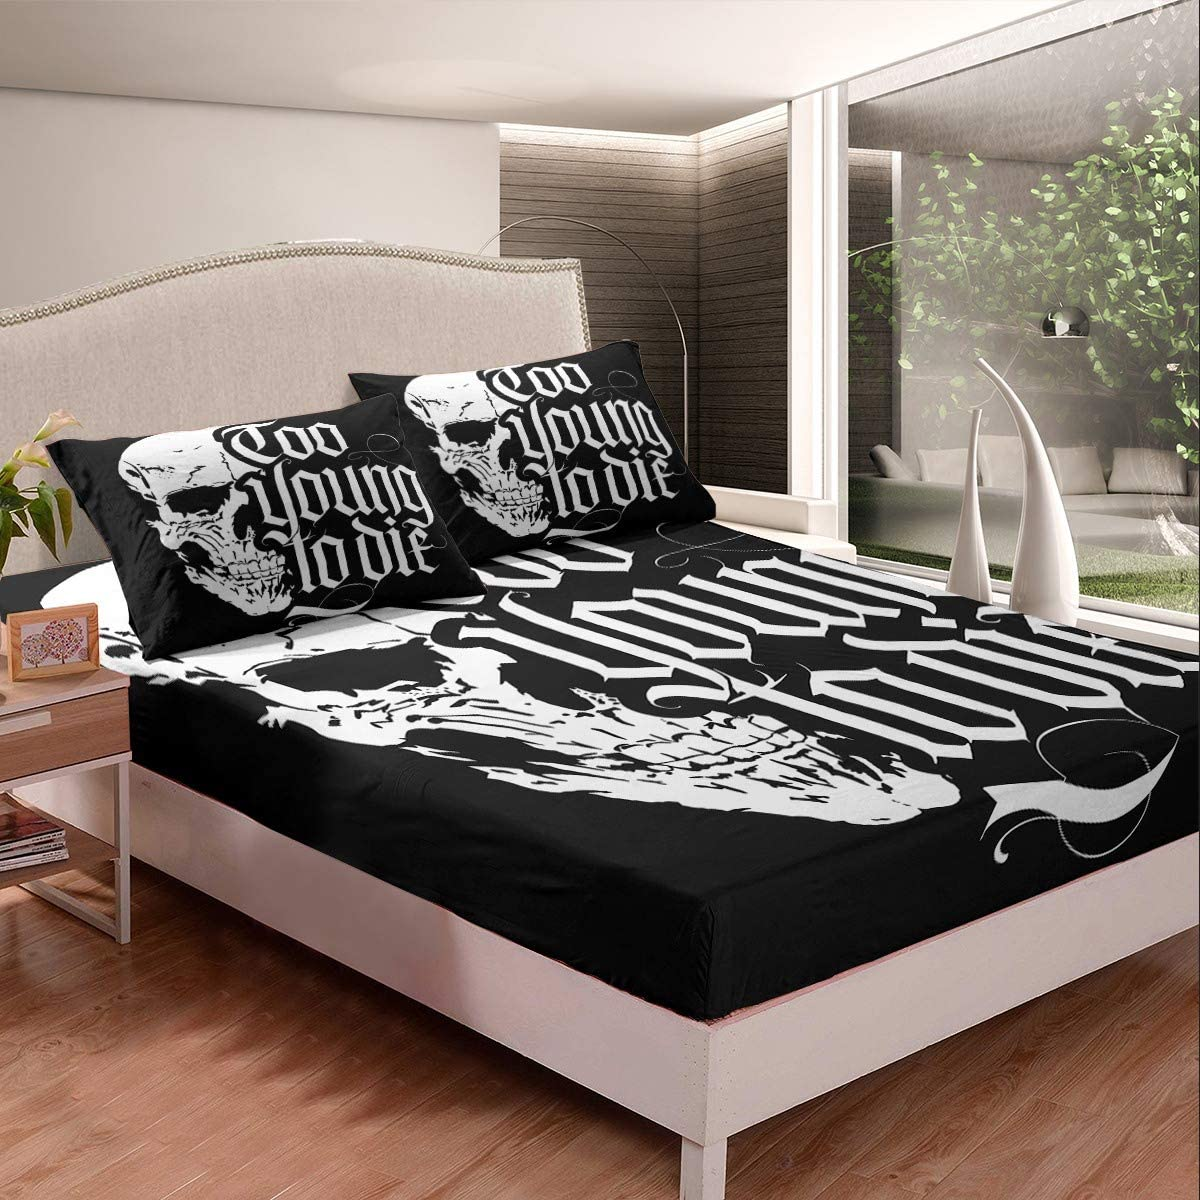 Queen Fitted Sheet Limited Special Challenge the lowest price of Japan Price Skull White Black Bed Pocke Cozy Deep